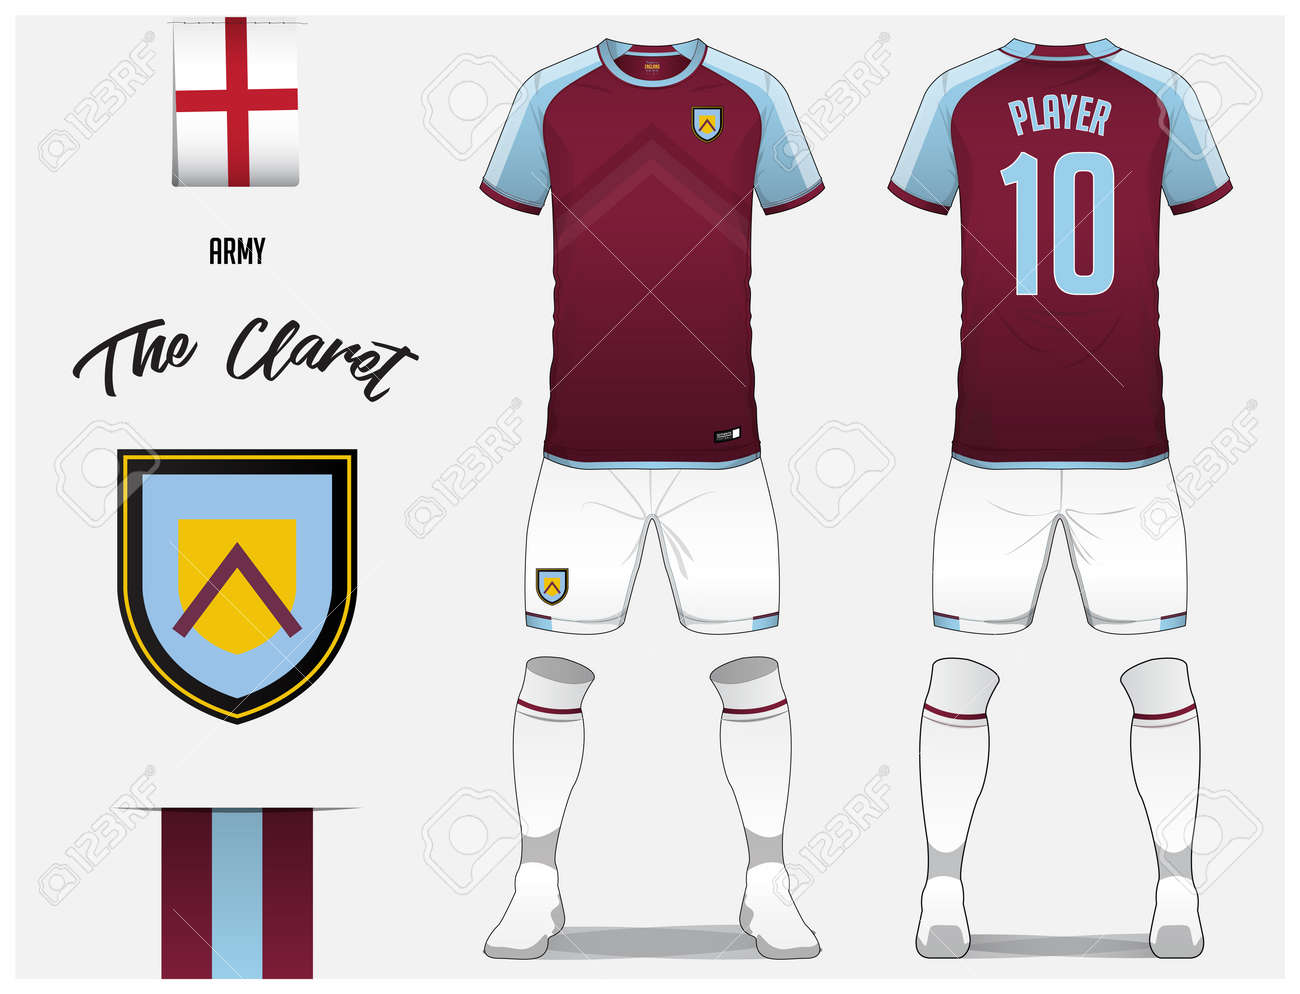 Soccer Jersey Or Football Kit Template For Club Claret Shirt With Sock And